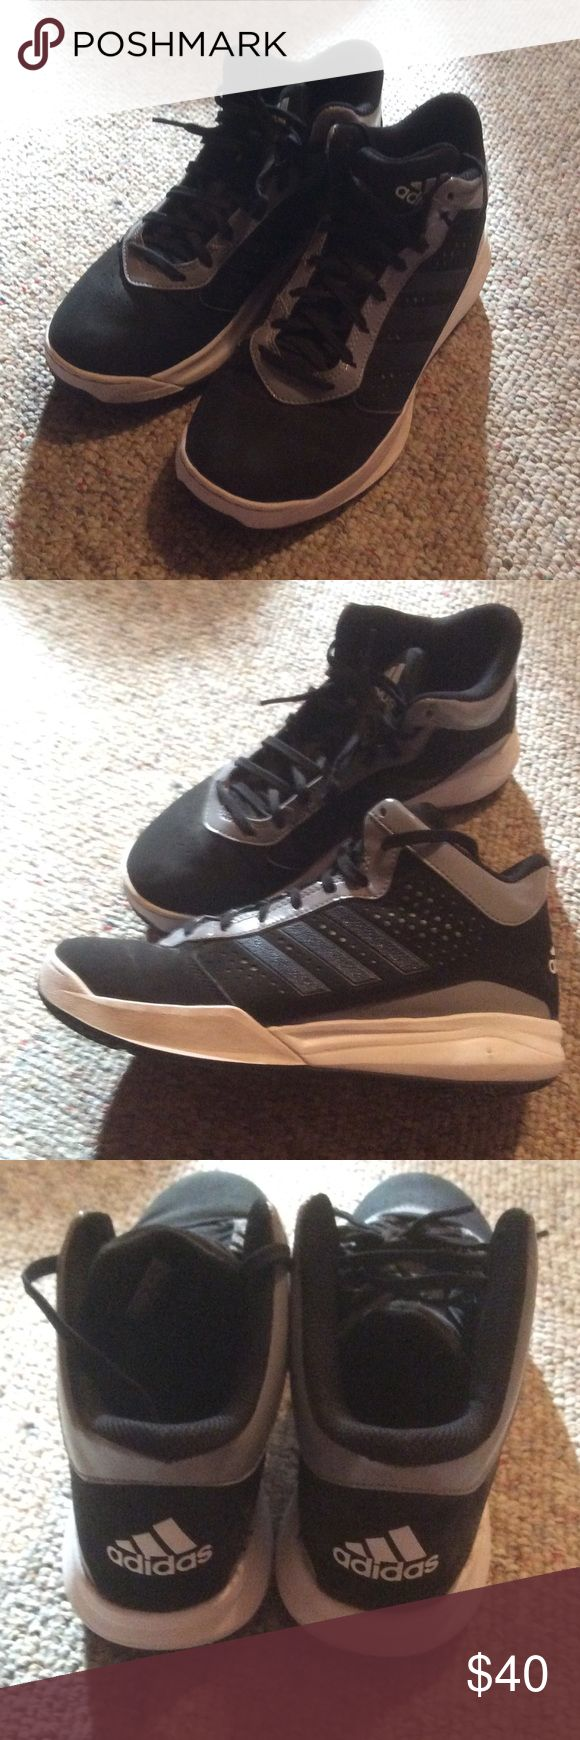 Boys Adidas Basketball Shoes - Size 7 Boys Adidas Basketball Shoes - Size 7. Only worn a couple of times. In excellent condition. From a smoke-free and pet-free home. Adidas Shoes Sneakers